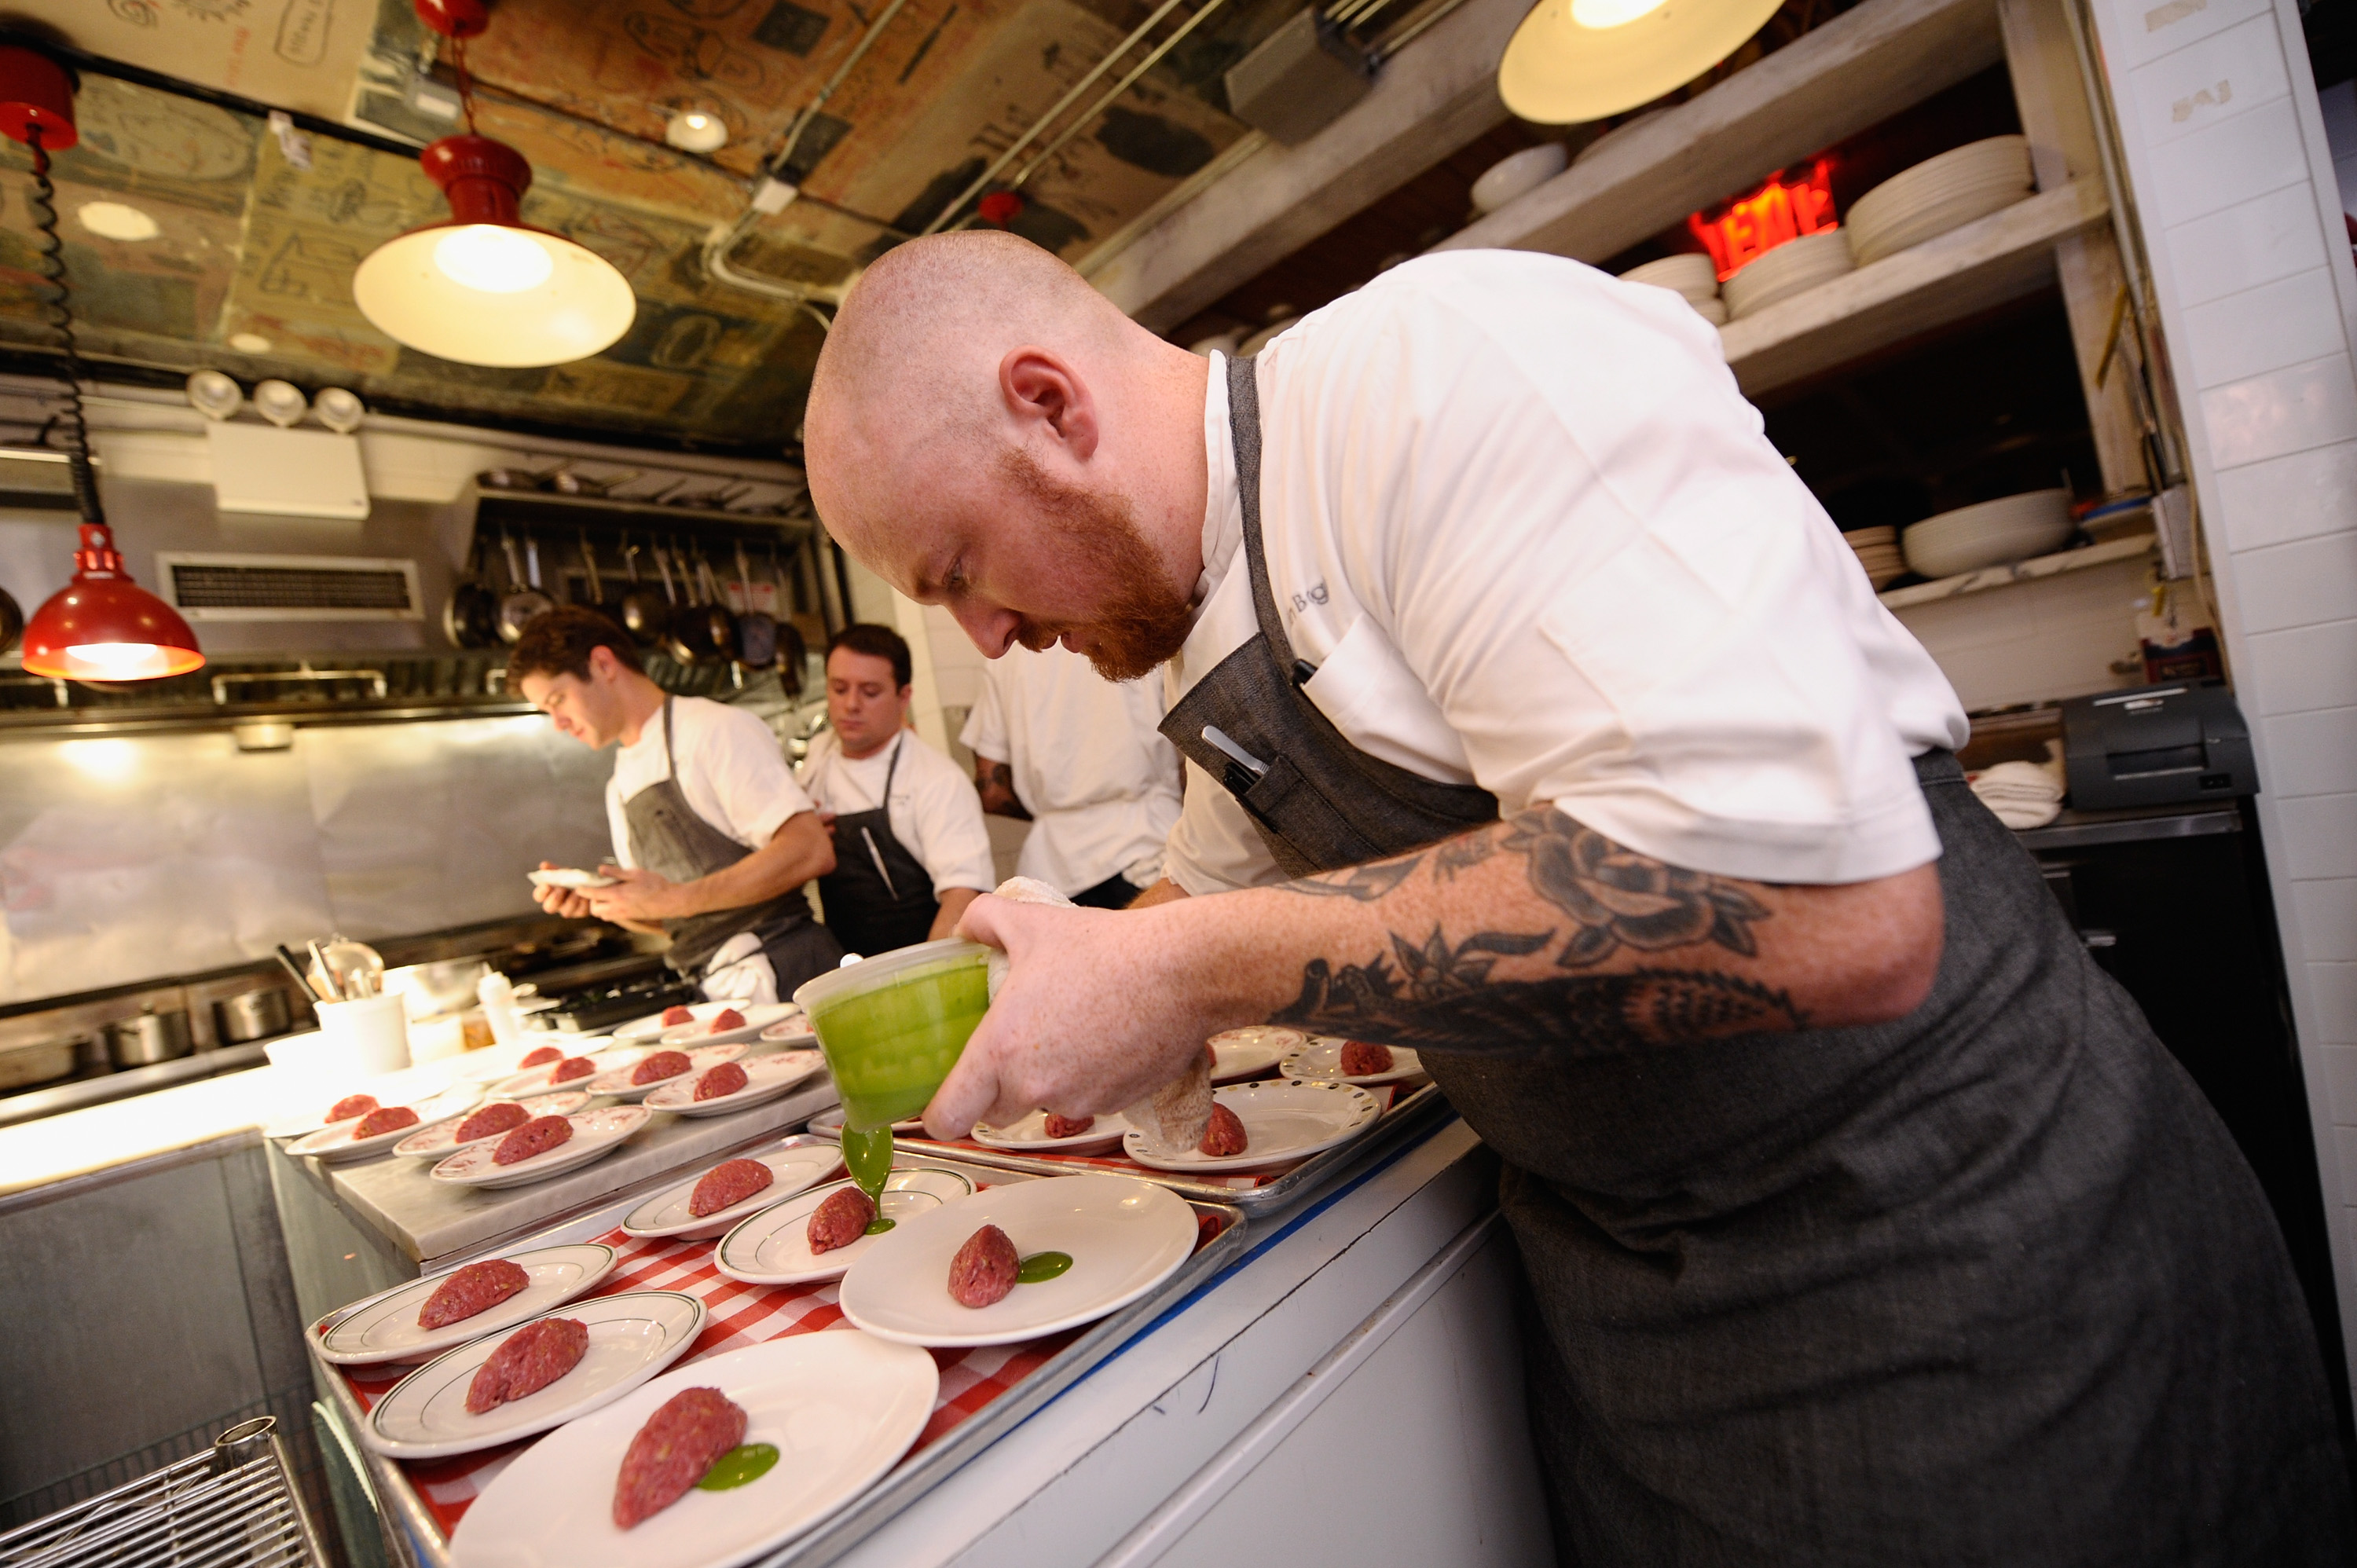 Bogle plating a dish for an event at the Food Network NYC Wine & Food Festival, October 16, 2014.